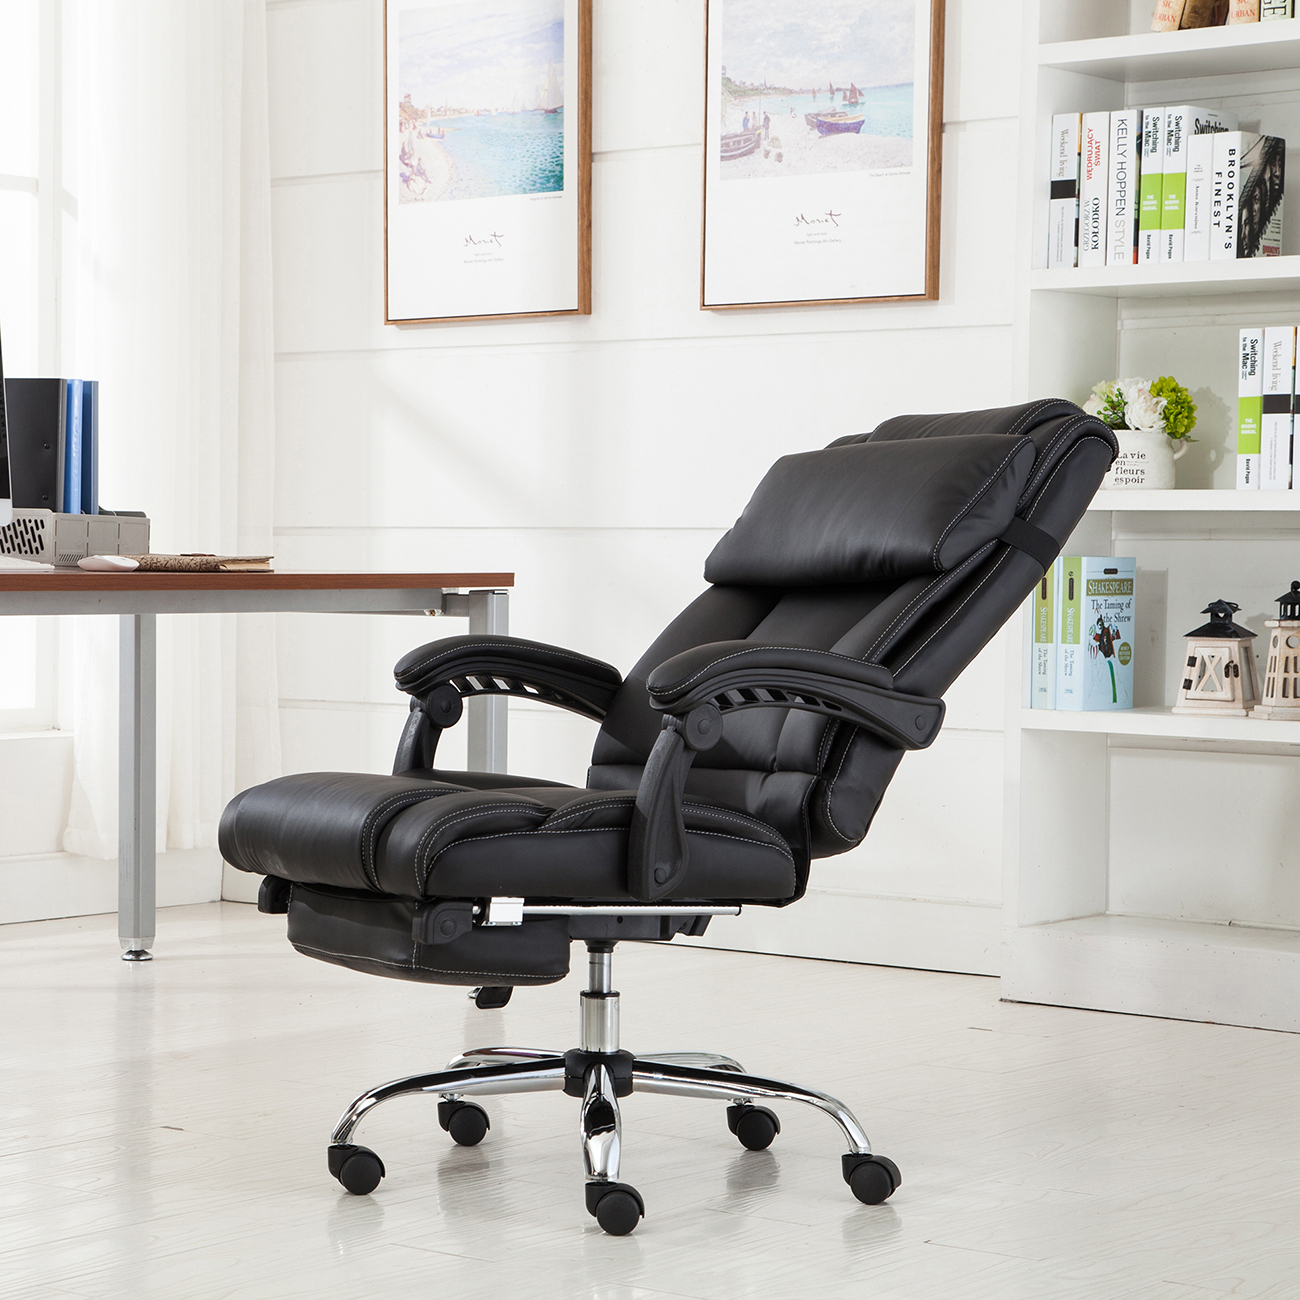 belleze executive reclining office chair high back w/ footrest